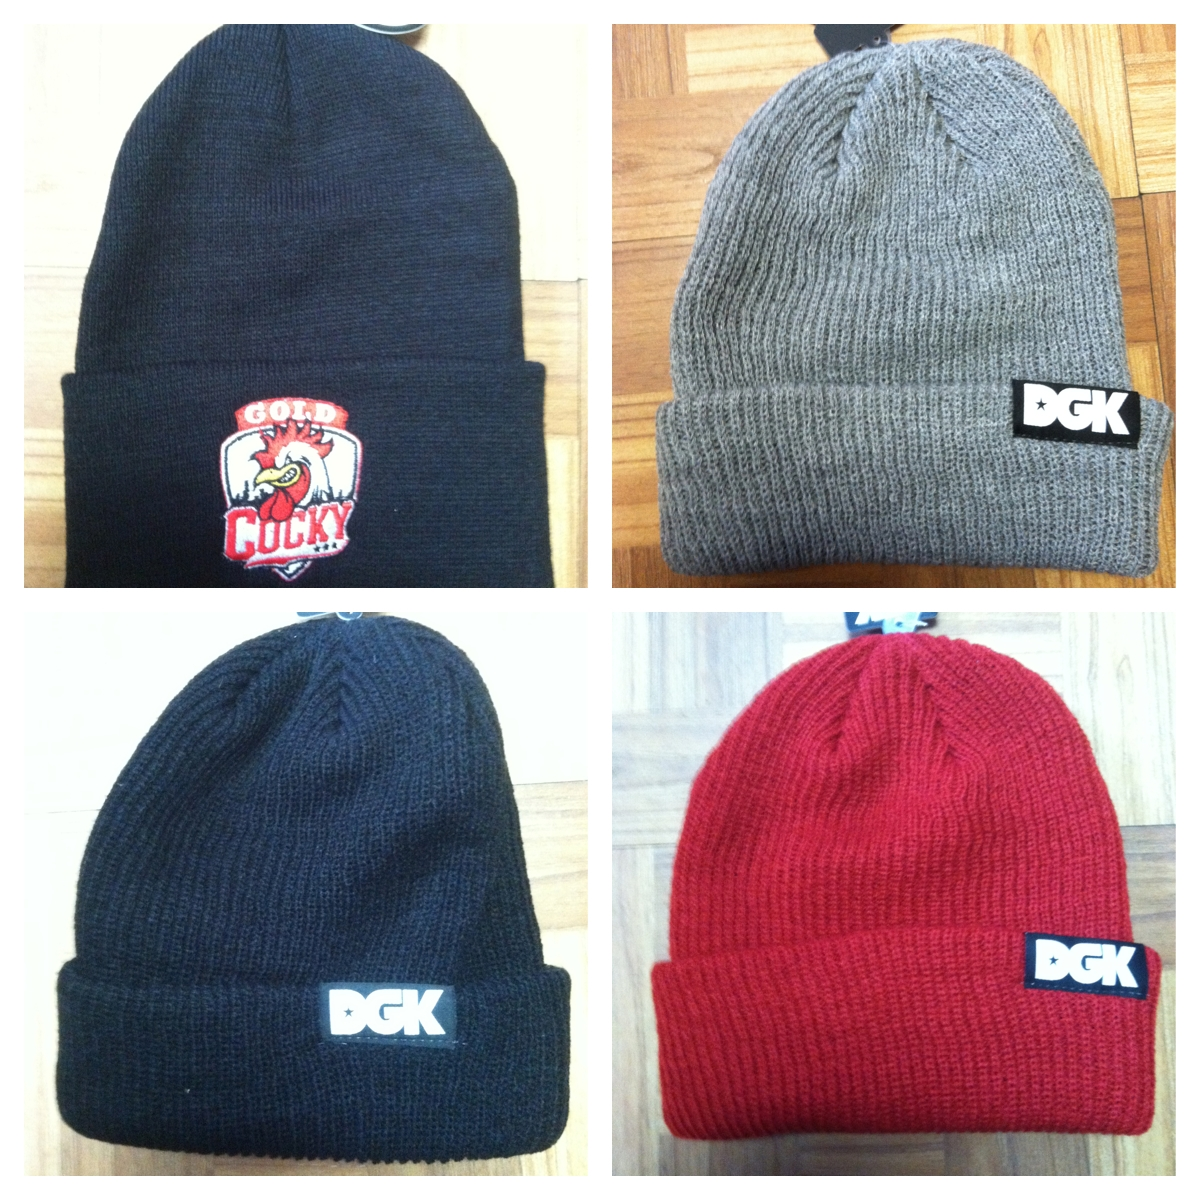 All New DGK   GOLD Wheels Beanies Just Came In vú skateboard shop a853b7e2061